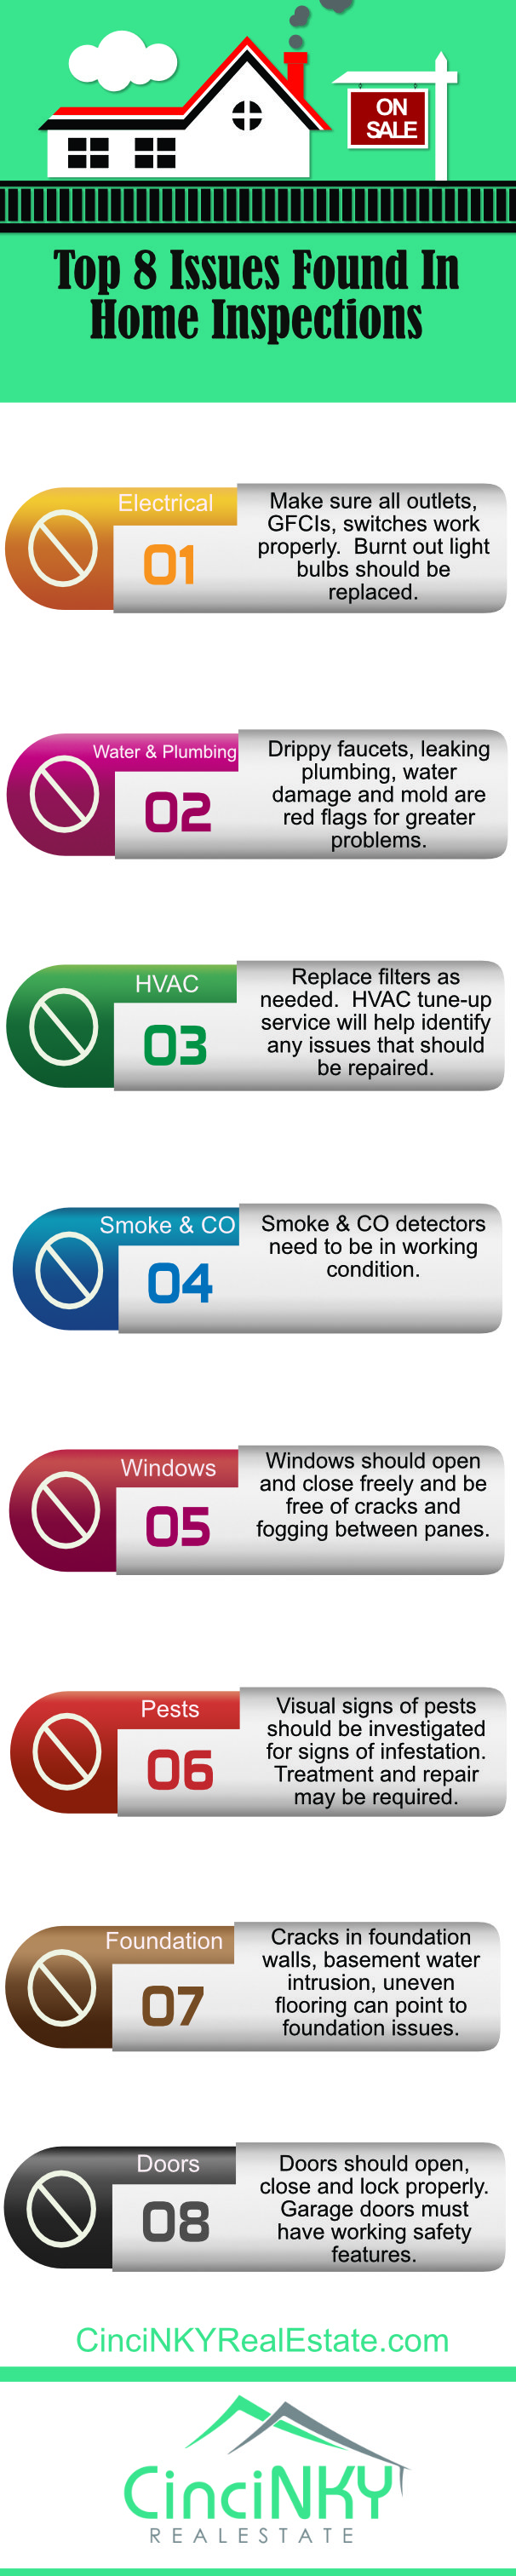 Top 8 Issues Found In Home Inspections Infographic Cincinnati Electrics Category Listing Northern Kentucky Real Estate